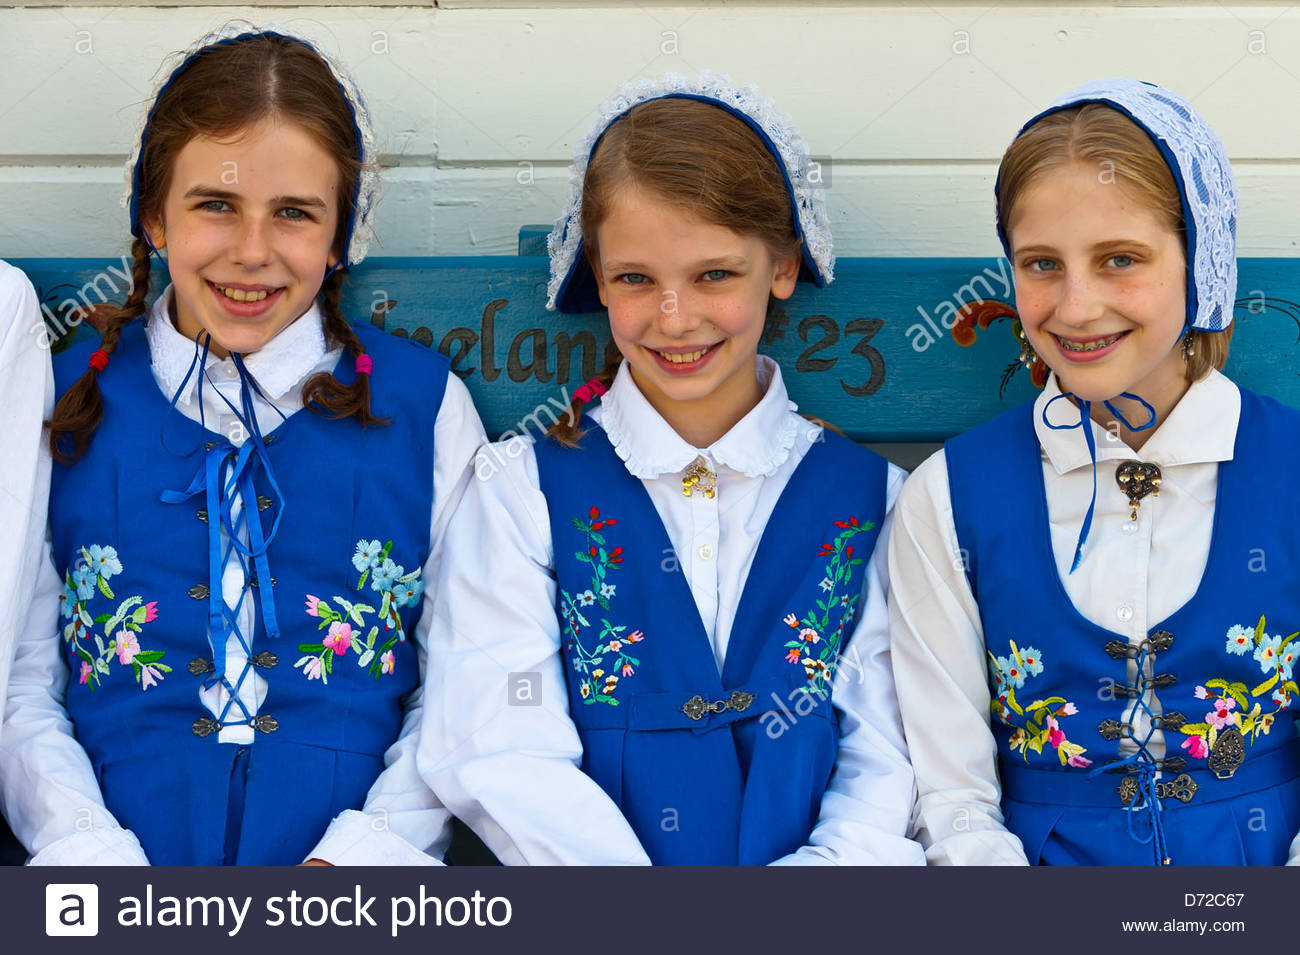 Girl Guides Uniforms Norway